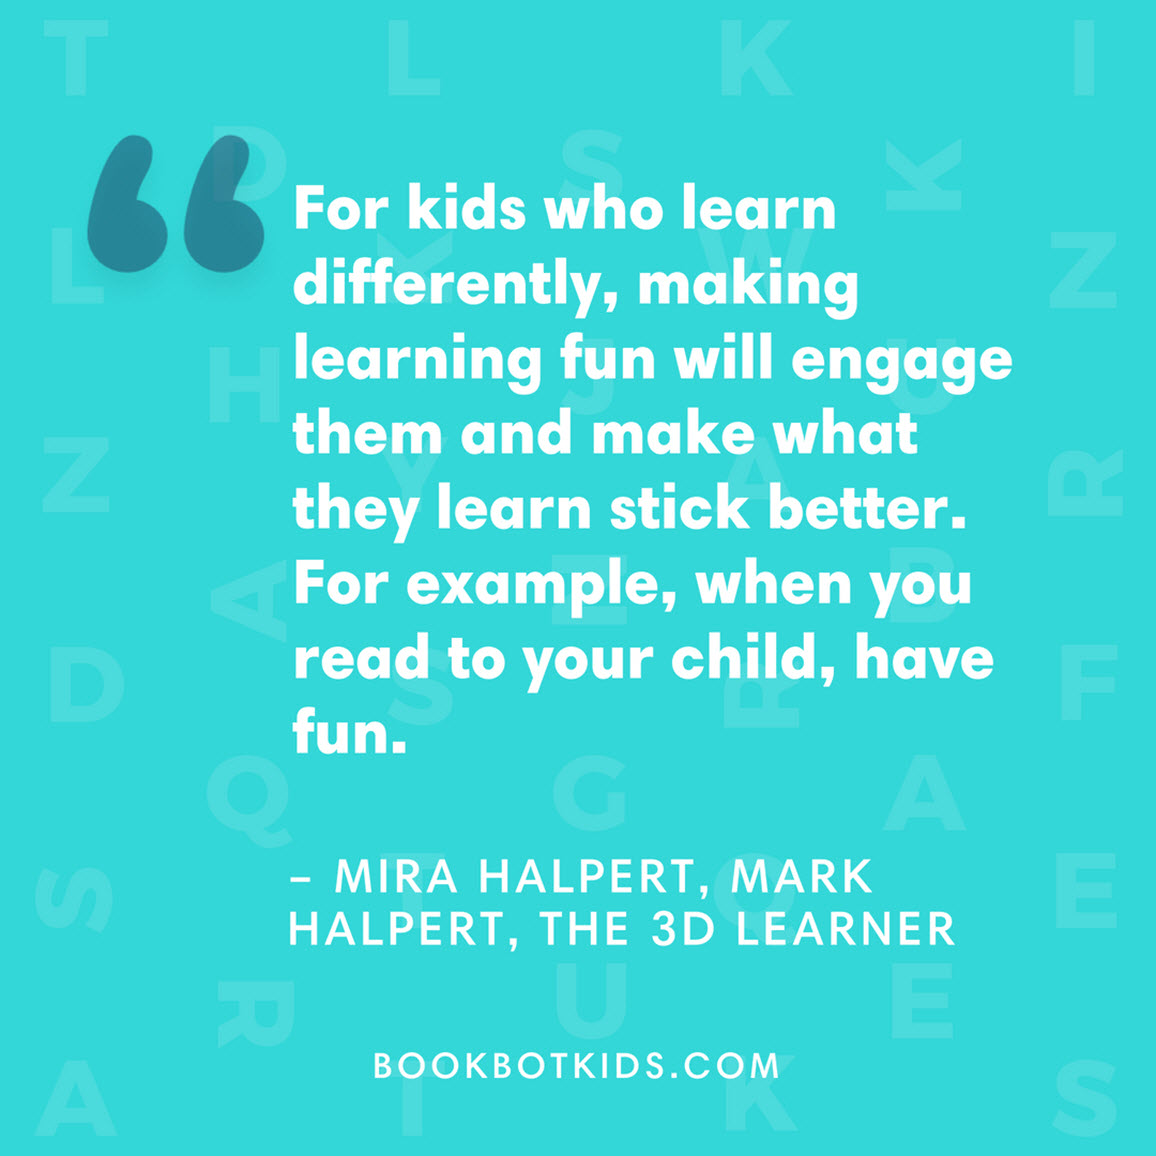 For kids who learn differently, making learning fun will engage them and make what they learn stick better. For example, when you read to your child, have fun. – Mira Halpert, Mark Halpert, The 3D Learner